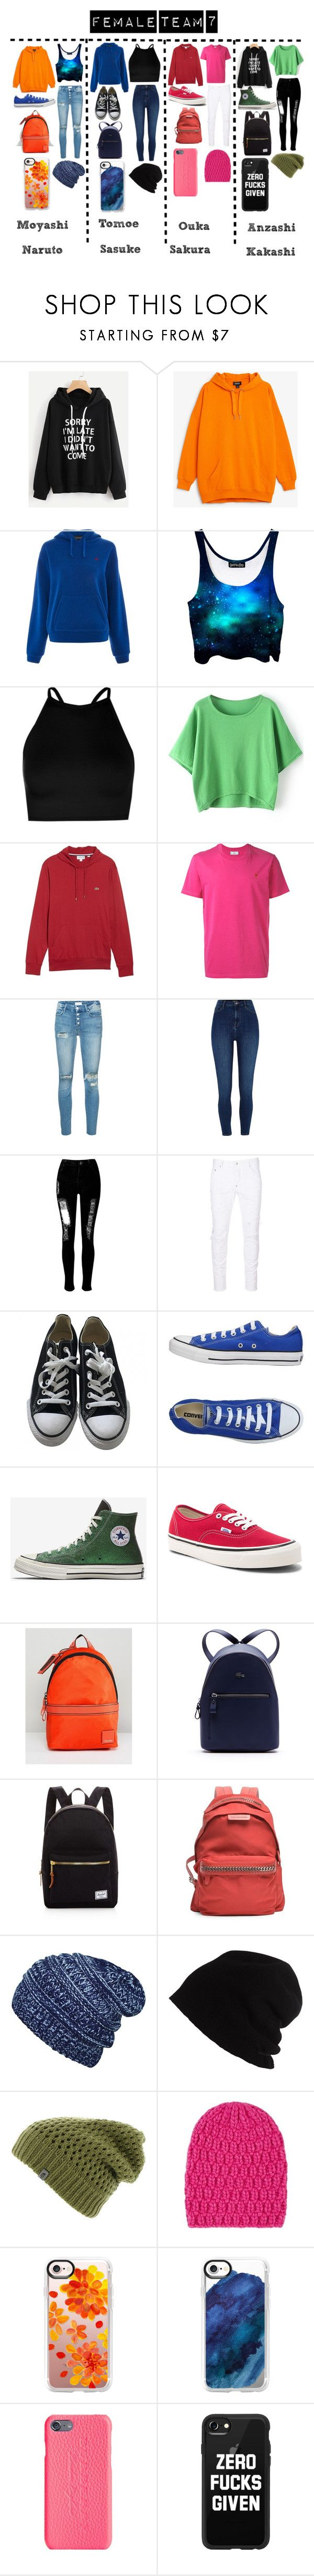 """Female Team 7"" by deathlyhallows12 on Polyvore featuring Monki, Topshop, Boohoo, Lacoste, AMI, Mother, River Island, WithChic, Dsquared2 and Converse"